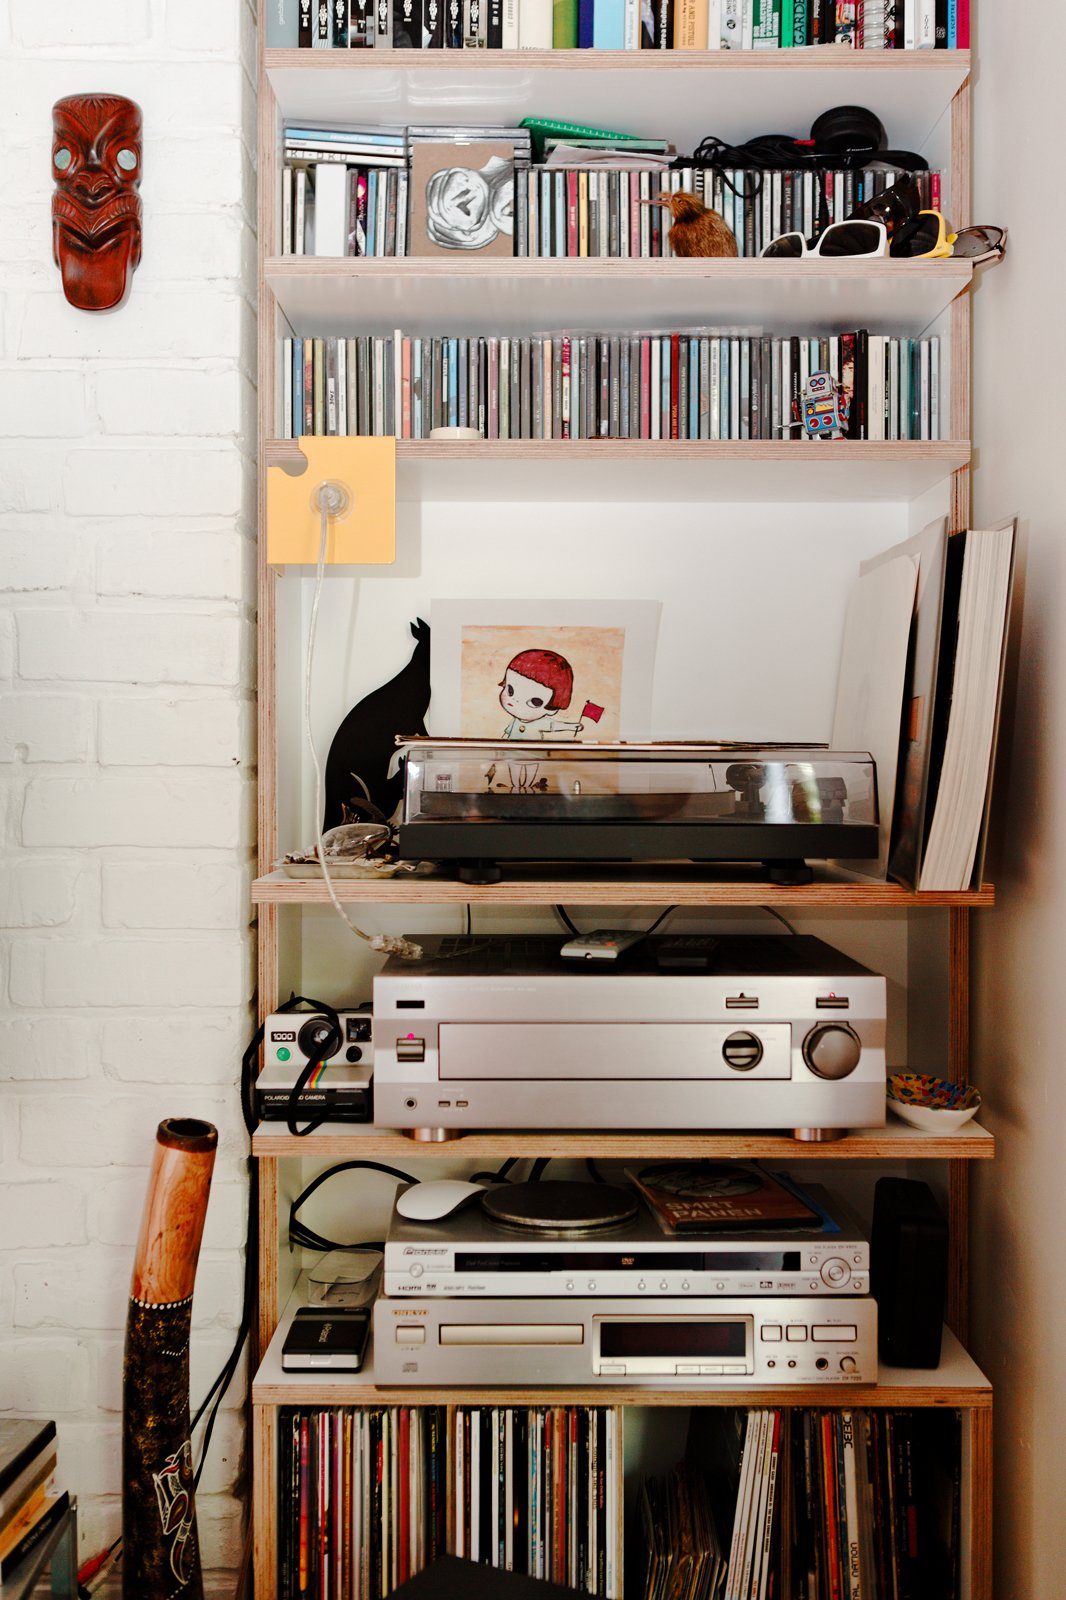 Much of the charm of this small, affordable space is its sense of careful clutter. The stereo, LPs, and CDs only add to the sense that this flat was designed for living, not as some airless showpiece.  Photo 6 of 8 in A Little Apartment Gets a Solid Renovation